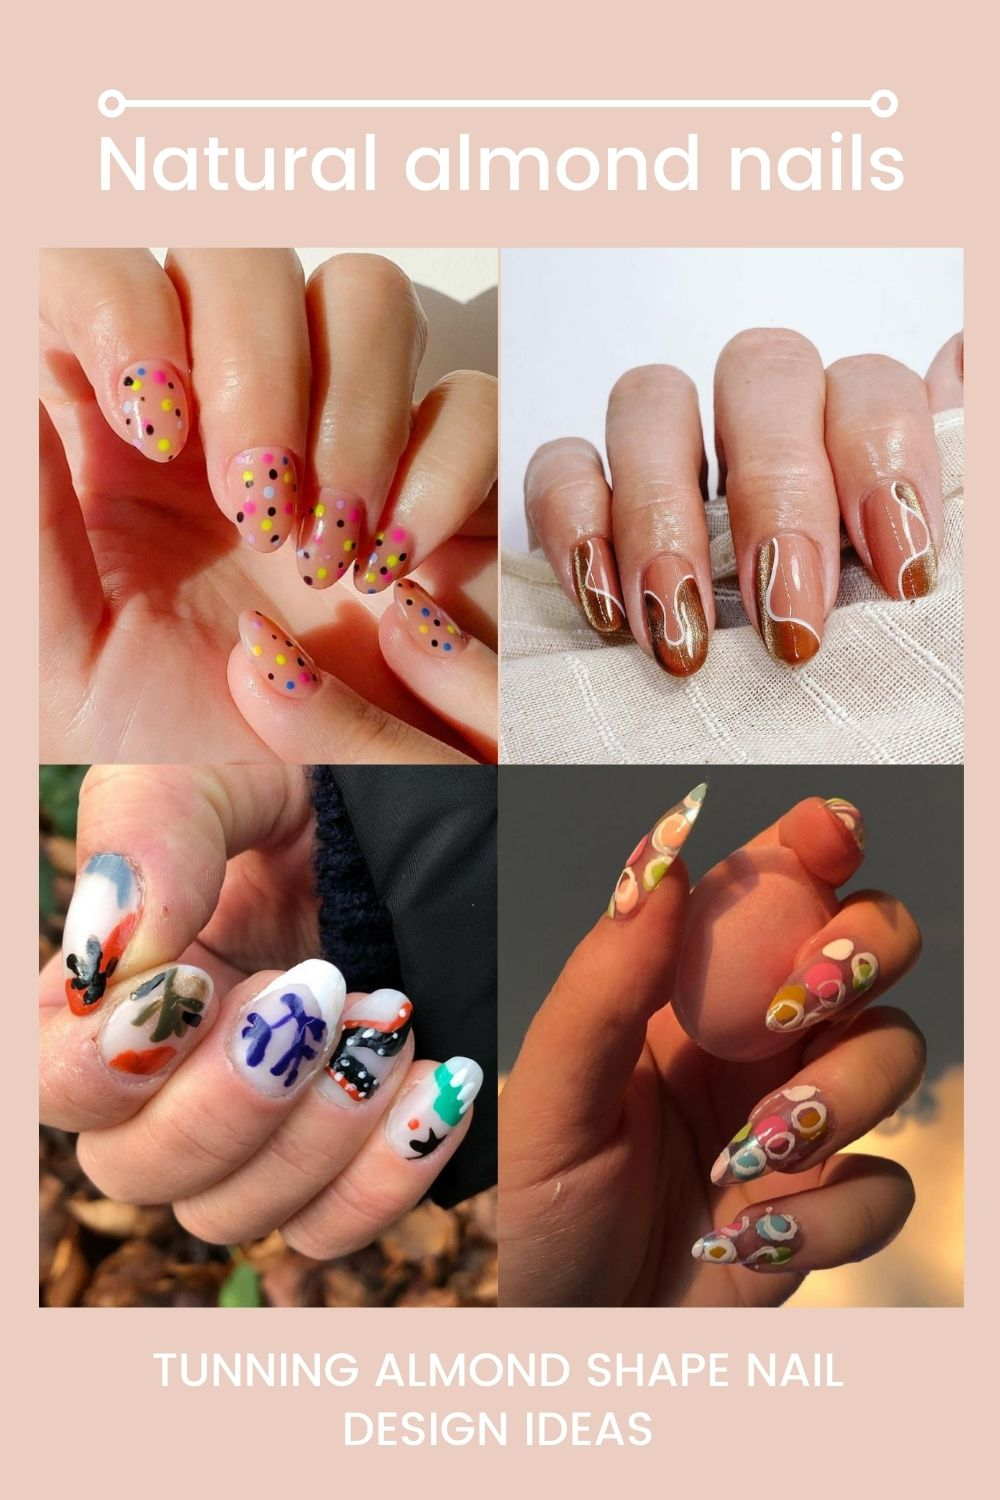 Natural almond nails | Amazing almond-shaped nail design ideas